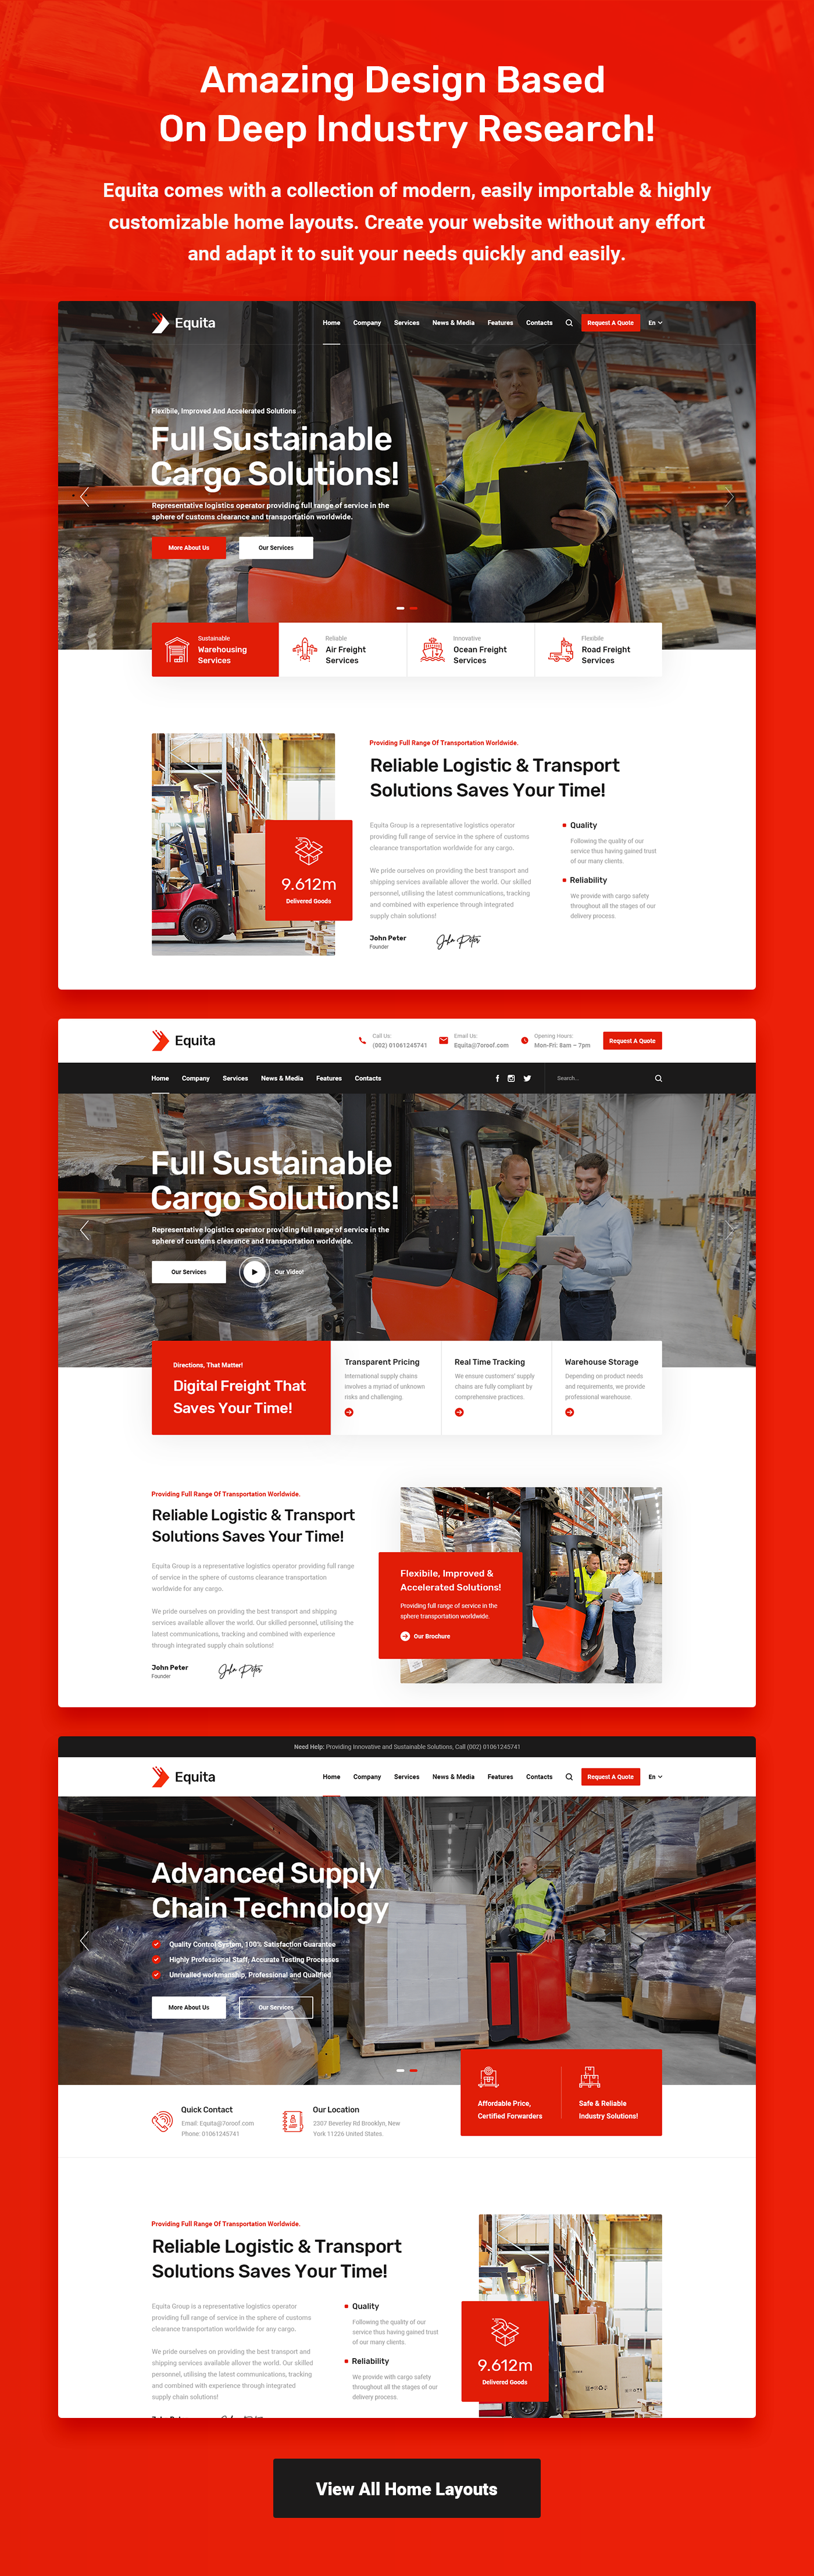 Equita - Logistics Cargo WordPress Theme - 6